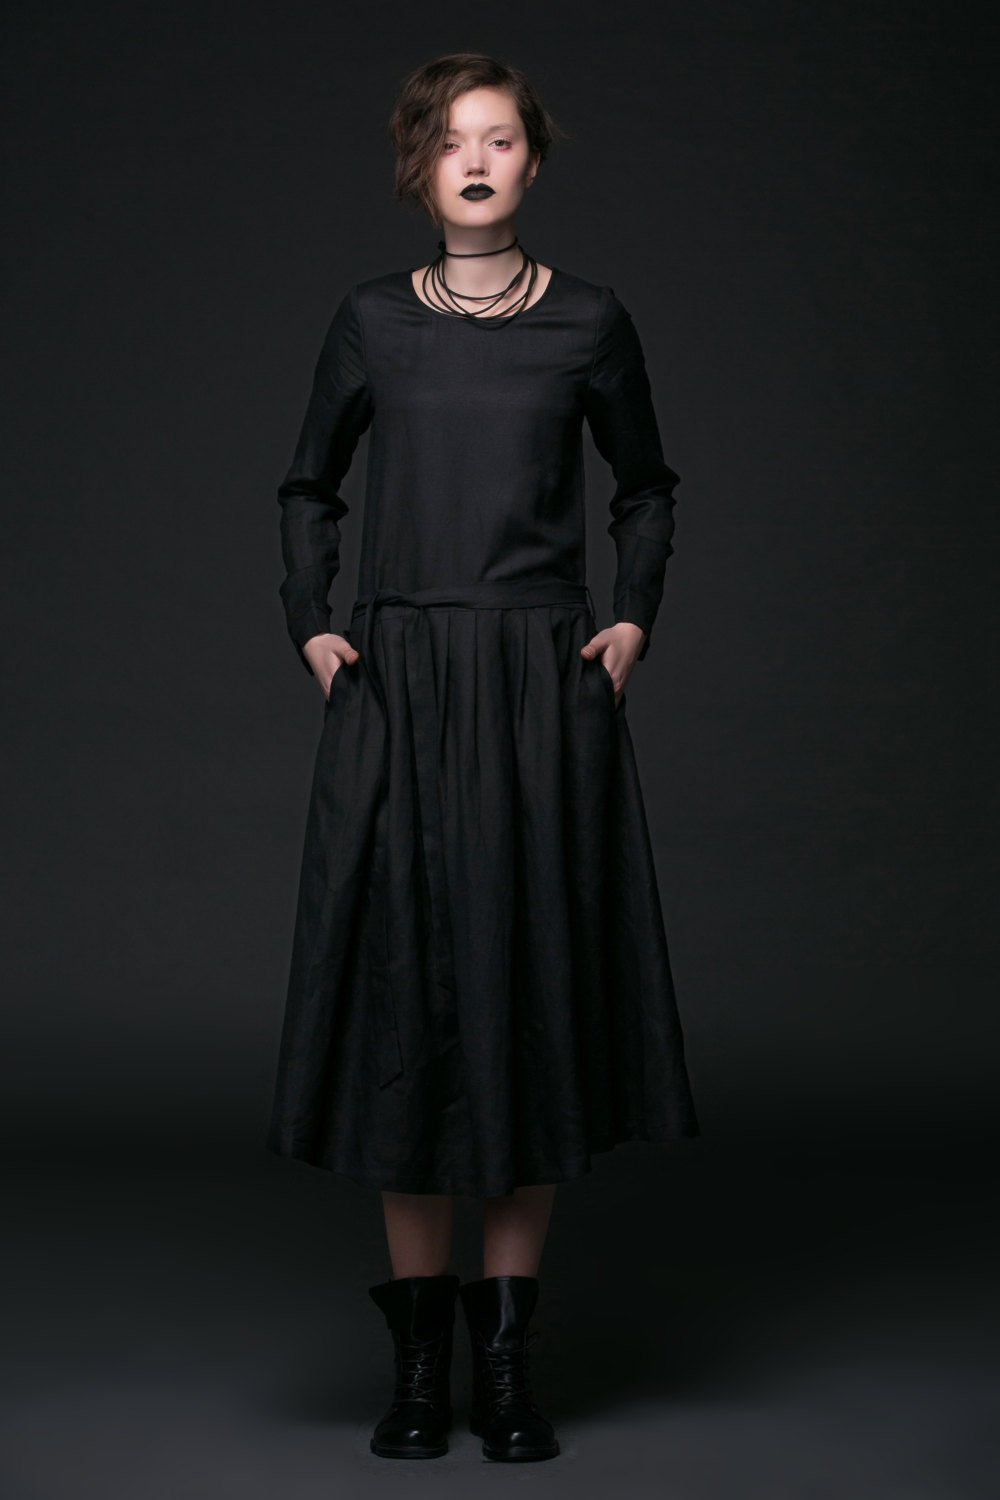 Designer dress, black linen dress, linen dress maxi, pleated dress, midi dress, long sleeves dress, autumn dress, dress with pockets C506